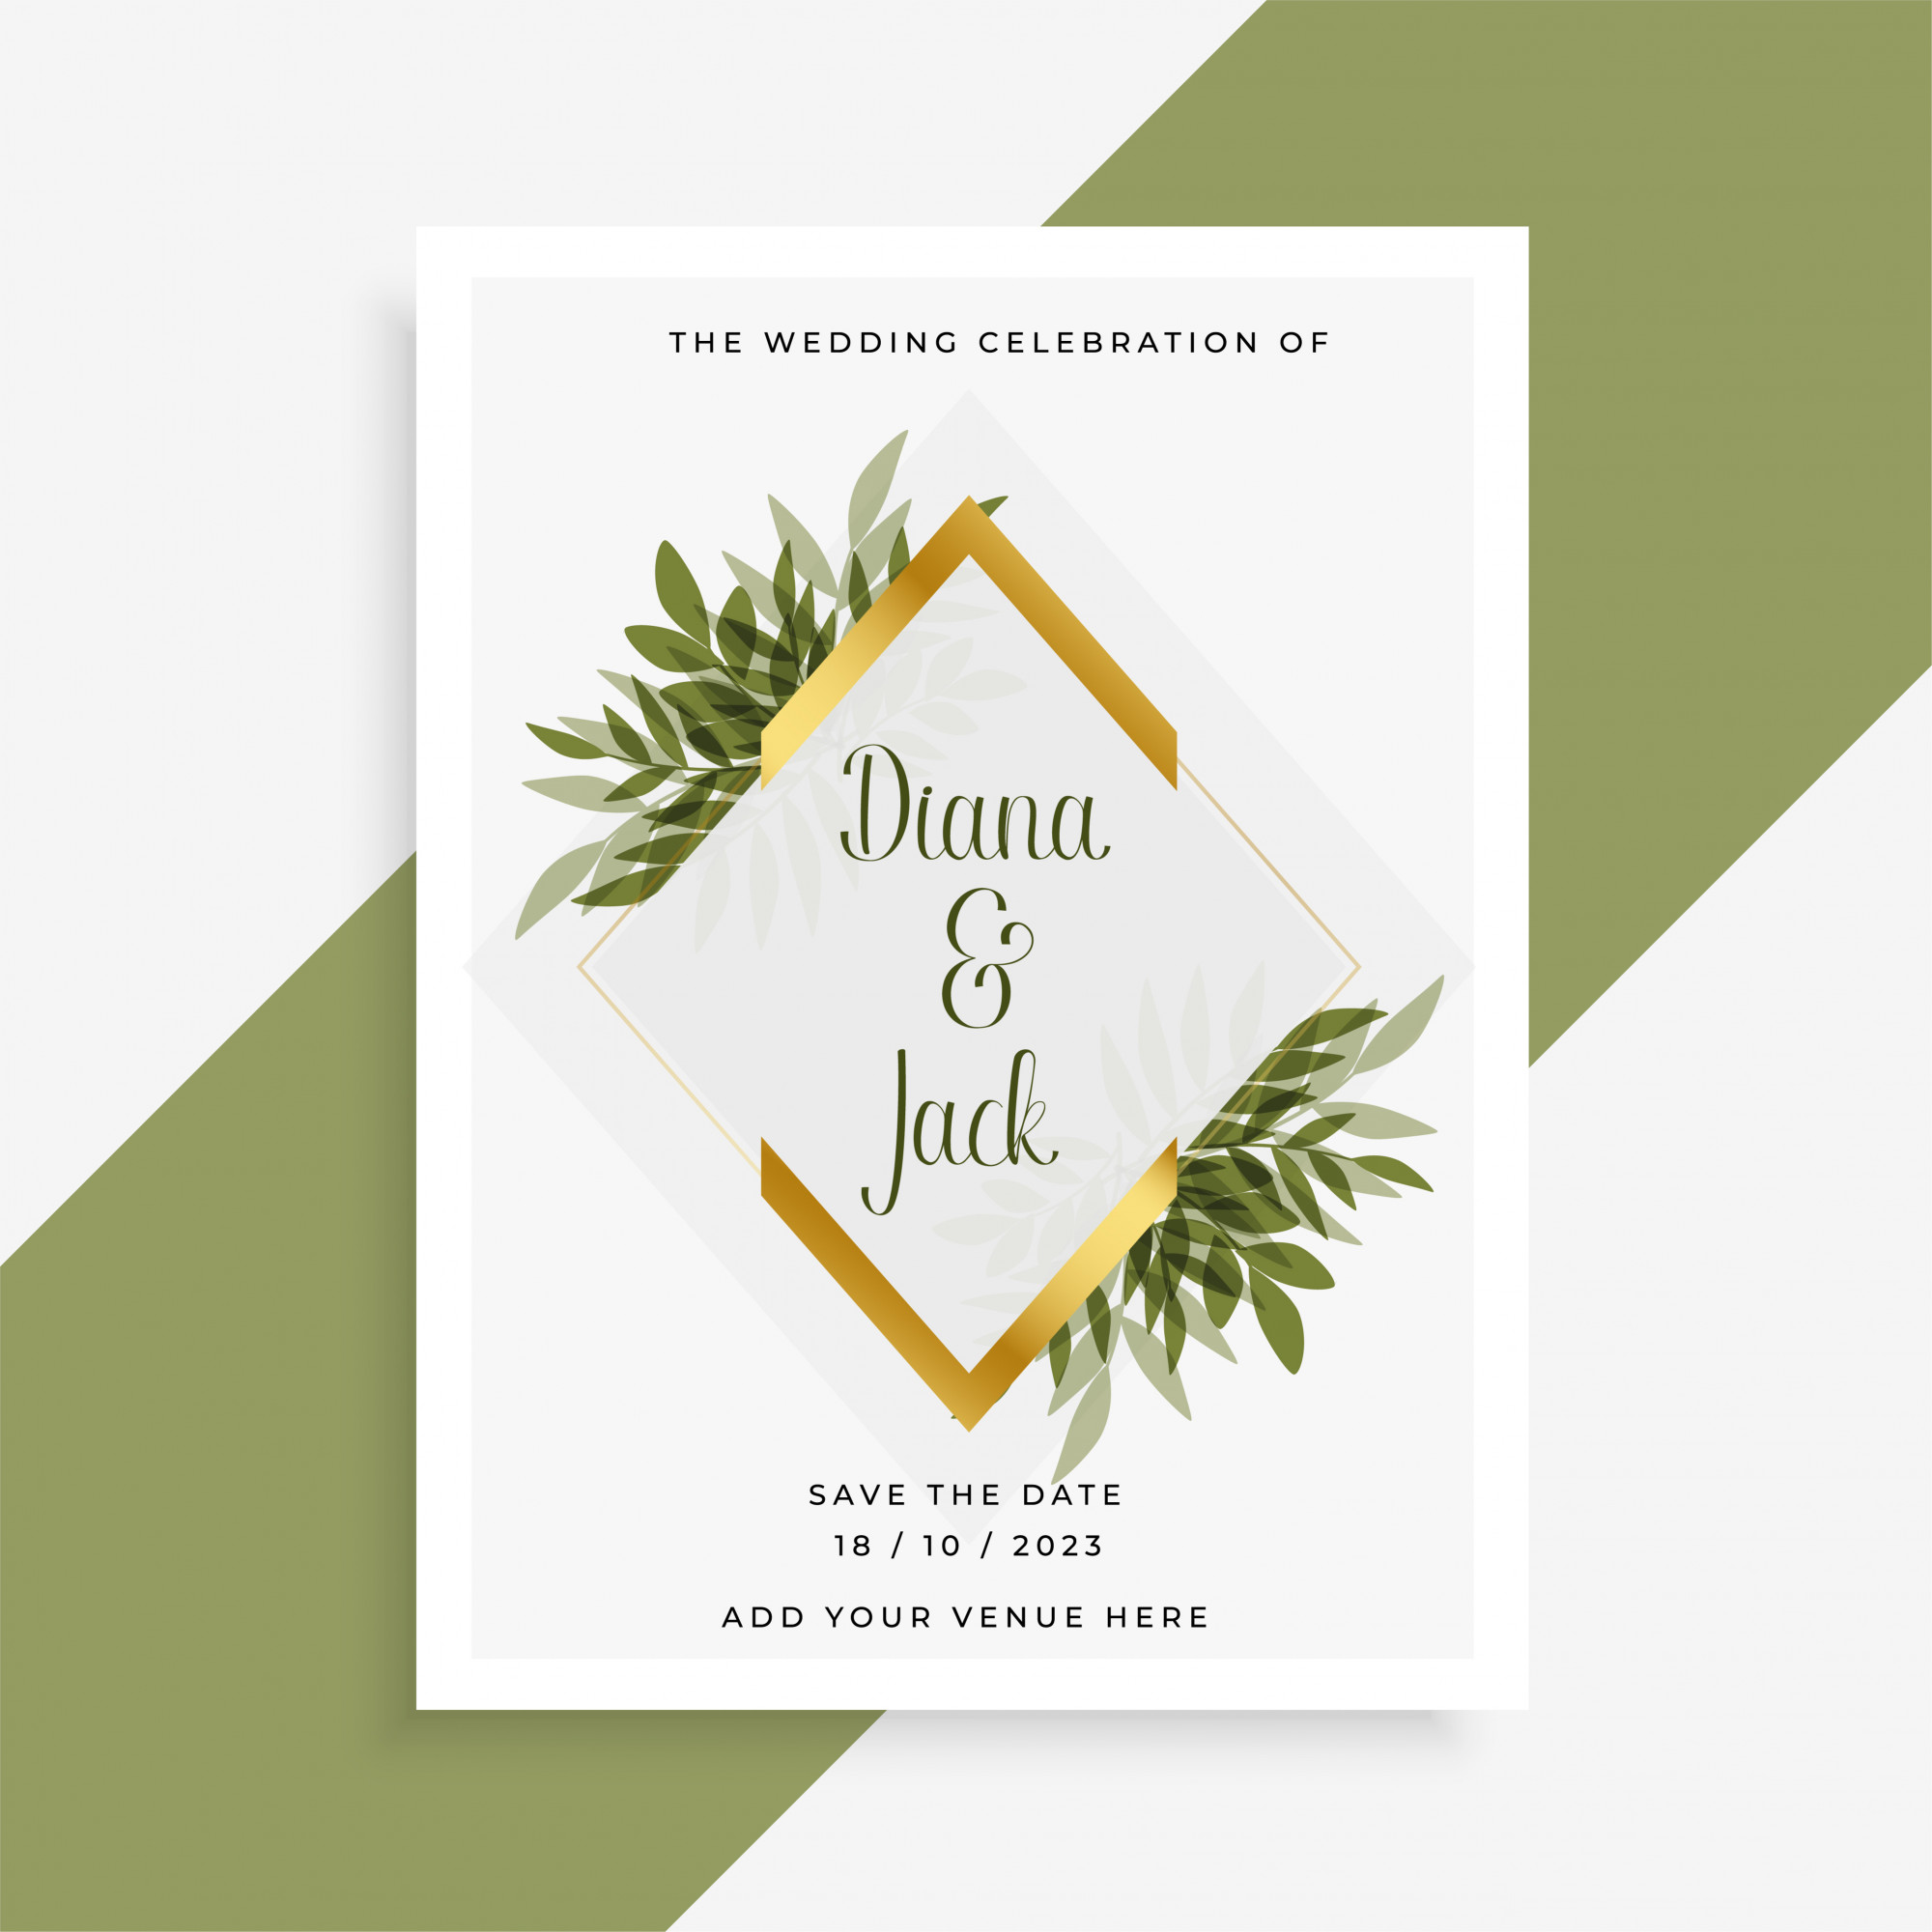 Elegant wedding card design with frame of leaves